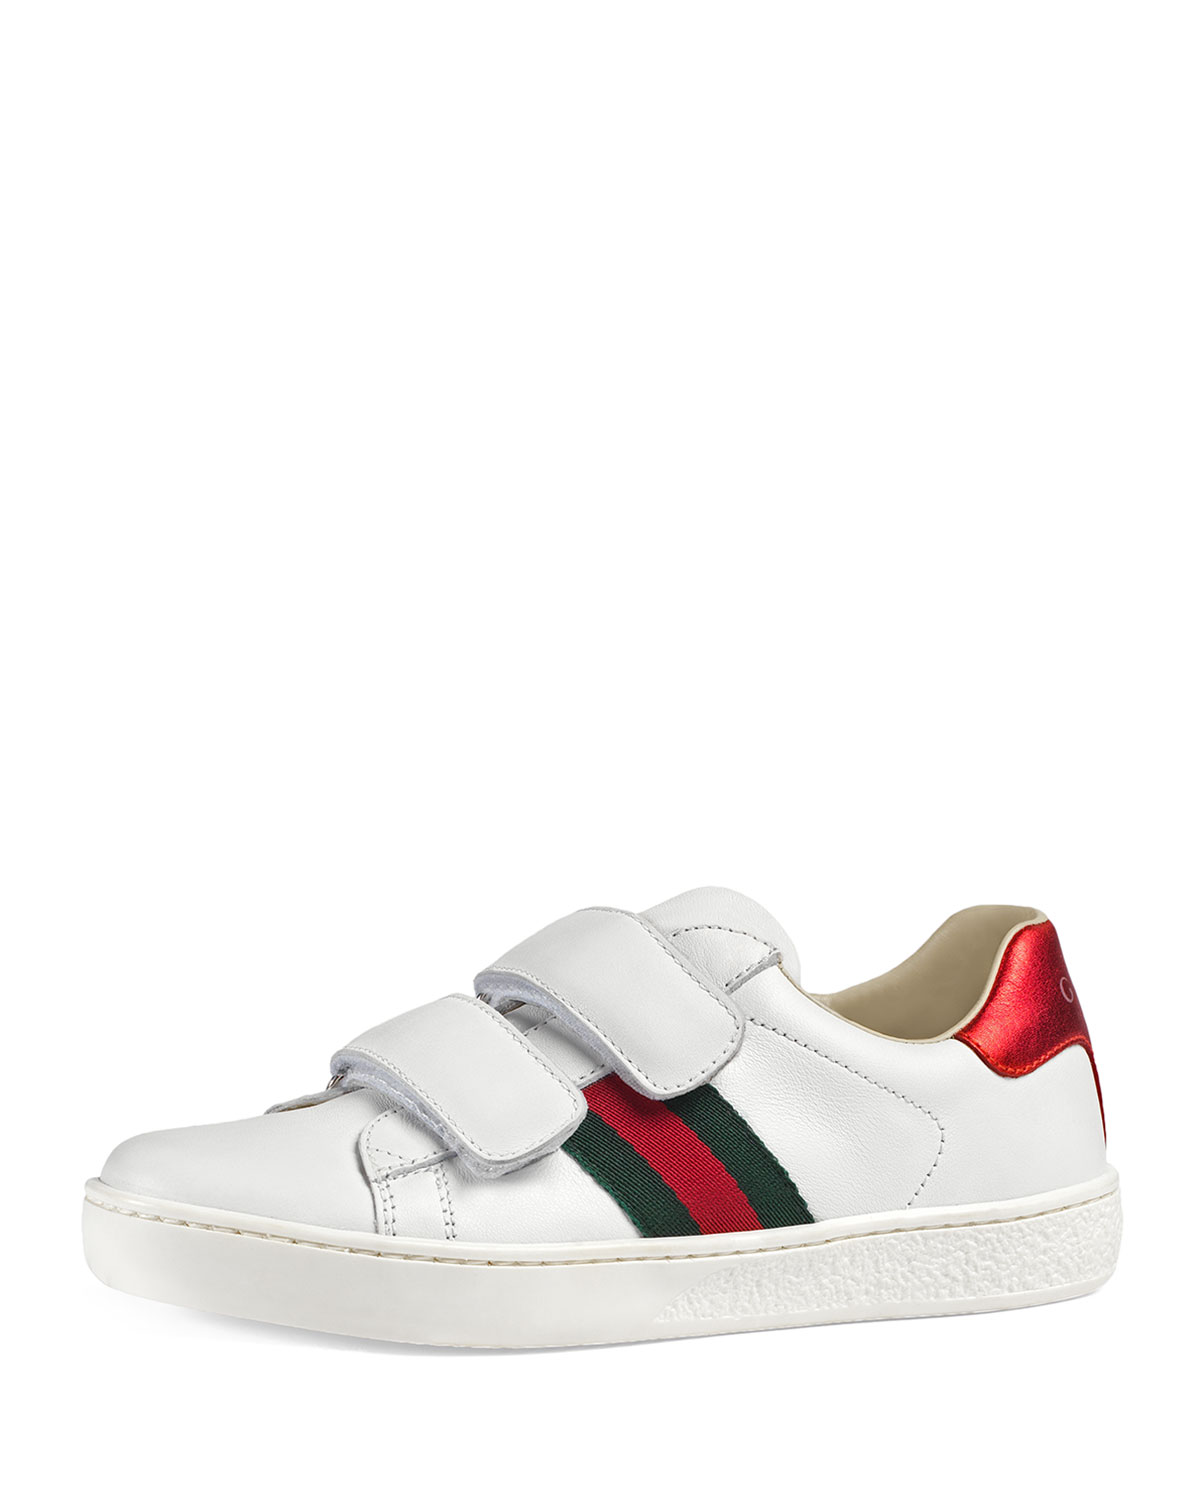 7f76108f79 Quick Look. Gucci · New Ace Web-Trim Leather Sneaker, Toddler/Kids